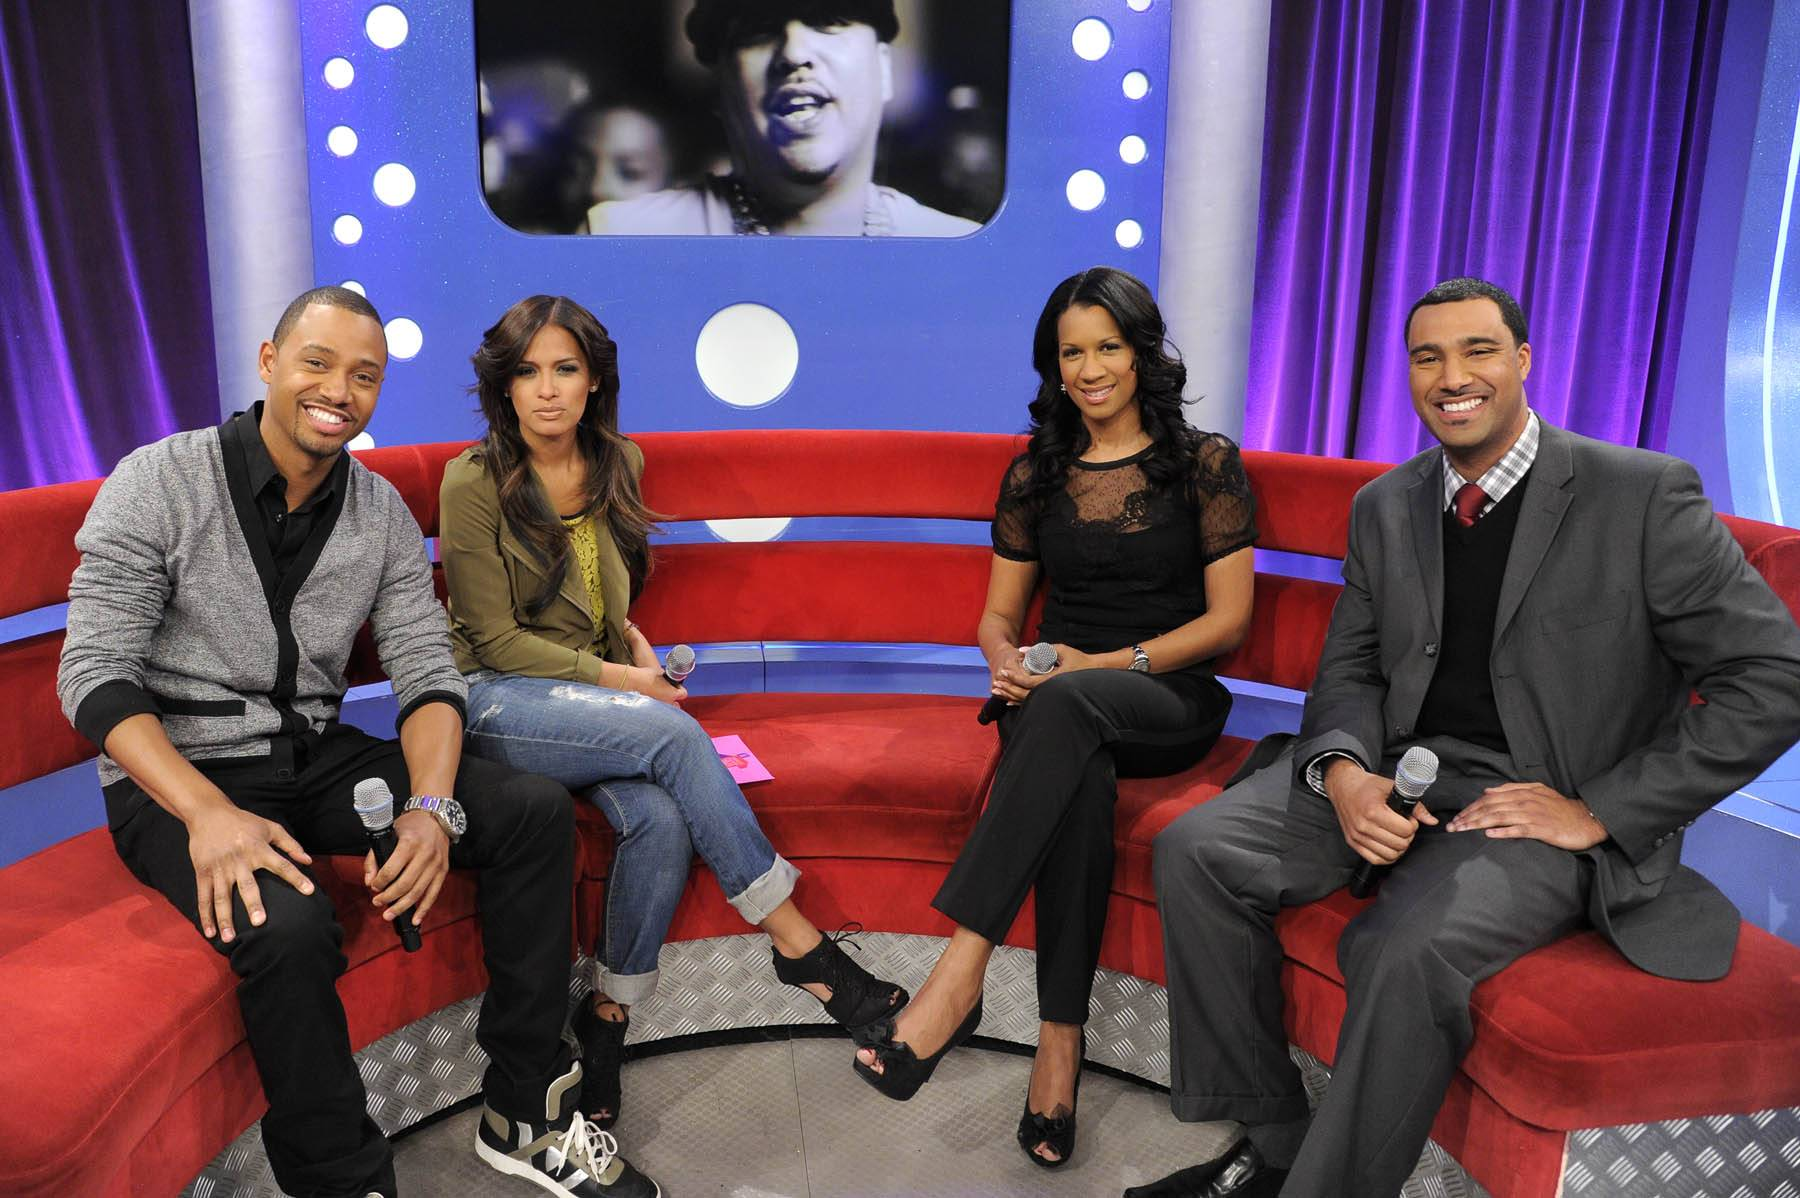 Let's Teach - Terrence and Rocsi talk with Dr. Michelle and Dr. Alduan Tarrt at 106 & Park, January 30, 2012. (Photo: John Ricard / BET)